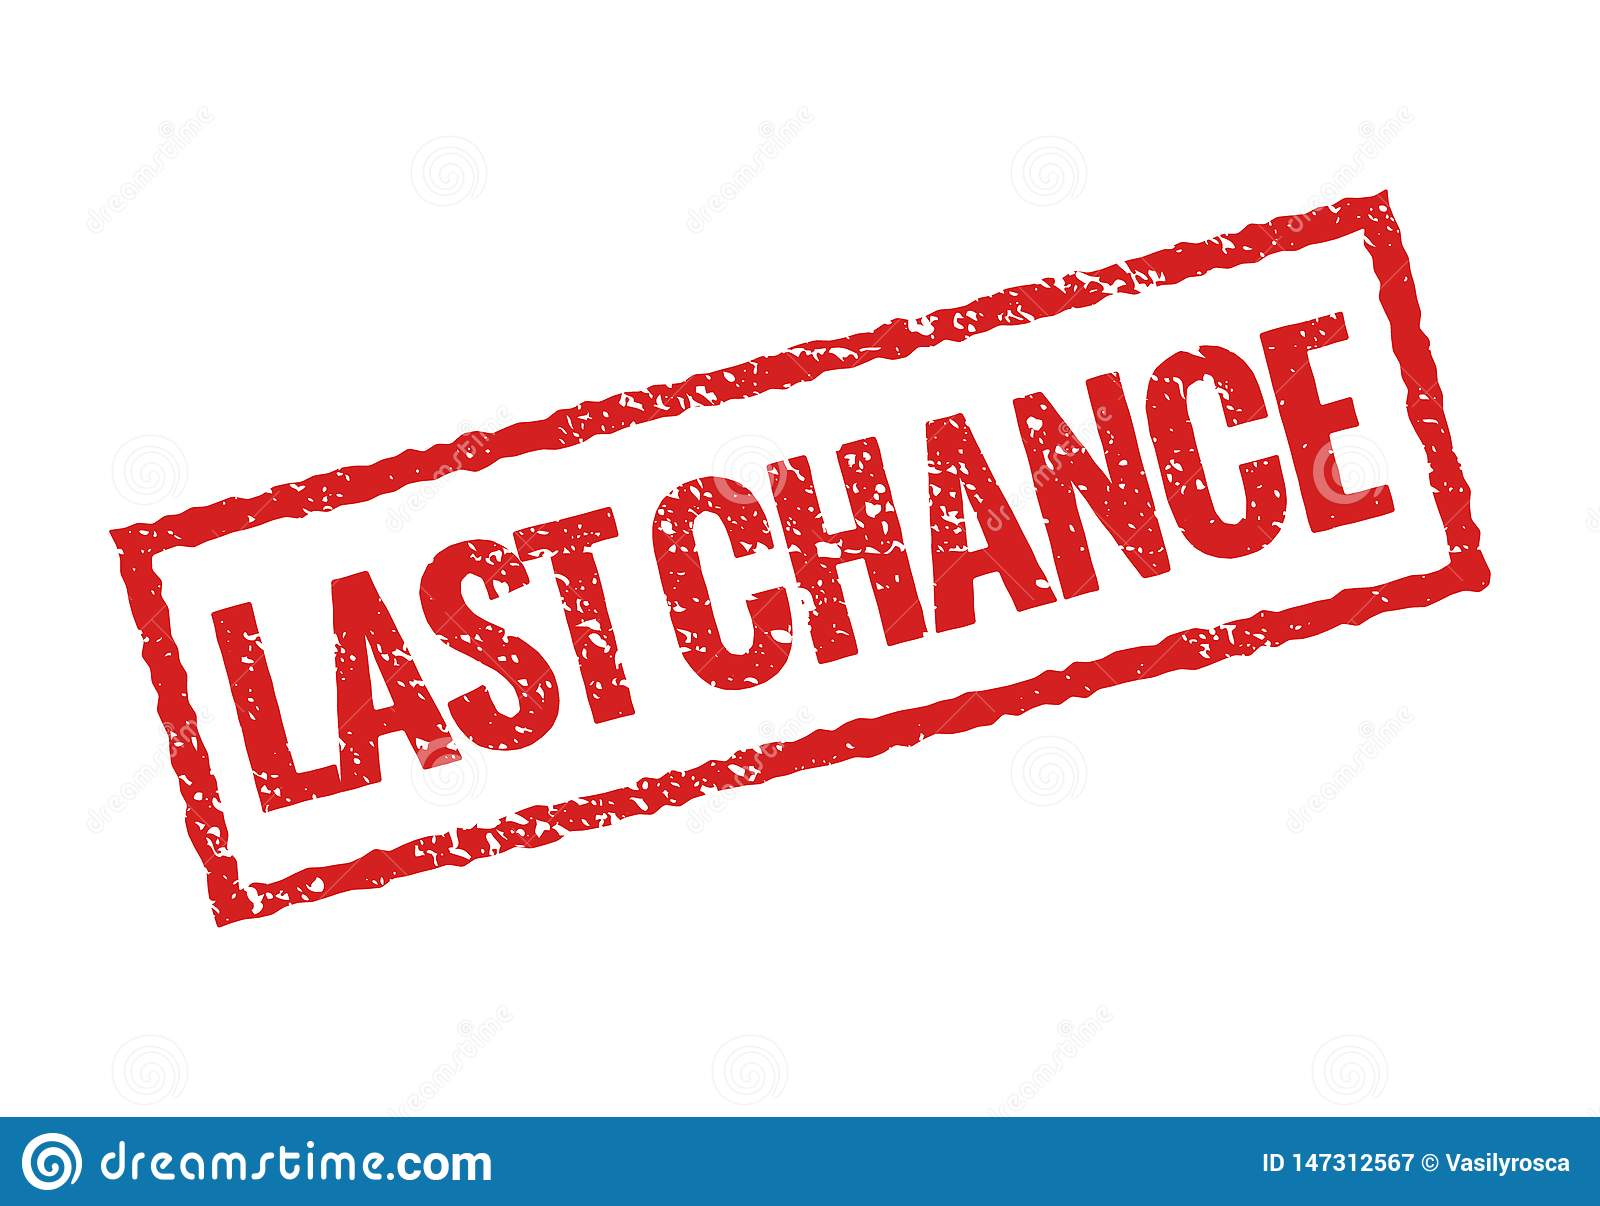 Last chance grunge stamp red icon. Banner sign final chance rubber seal